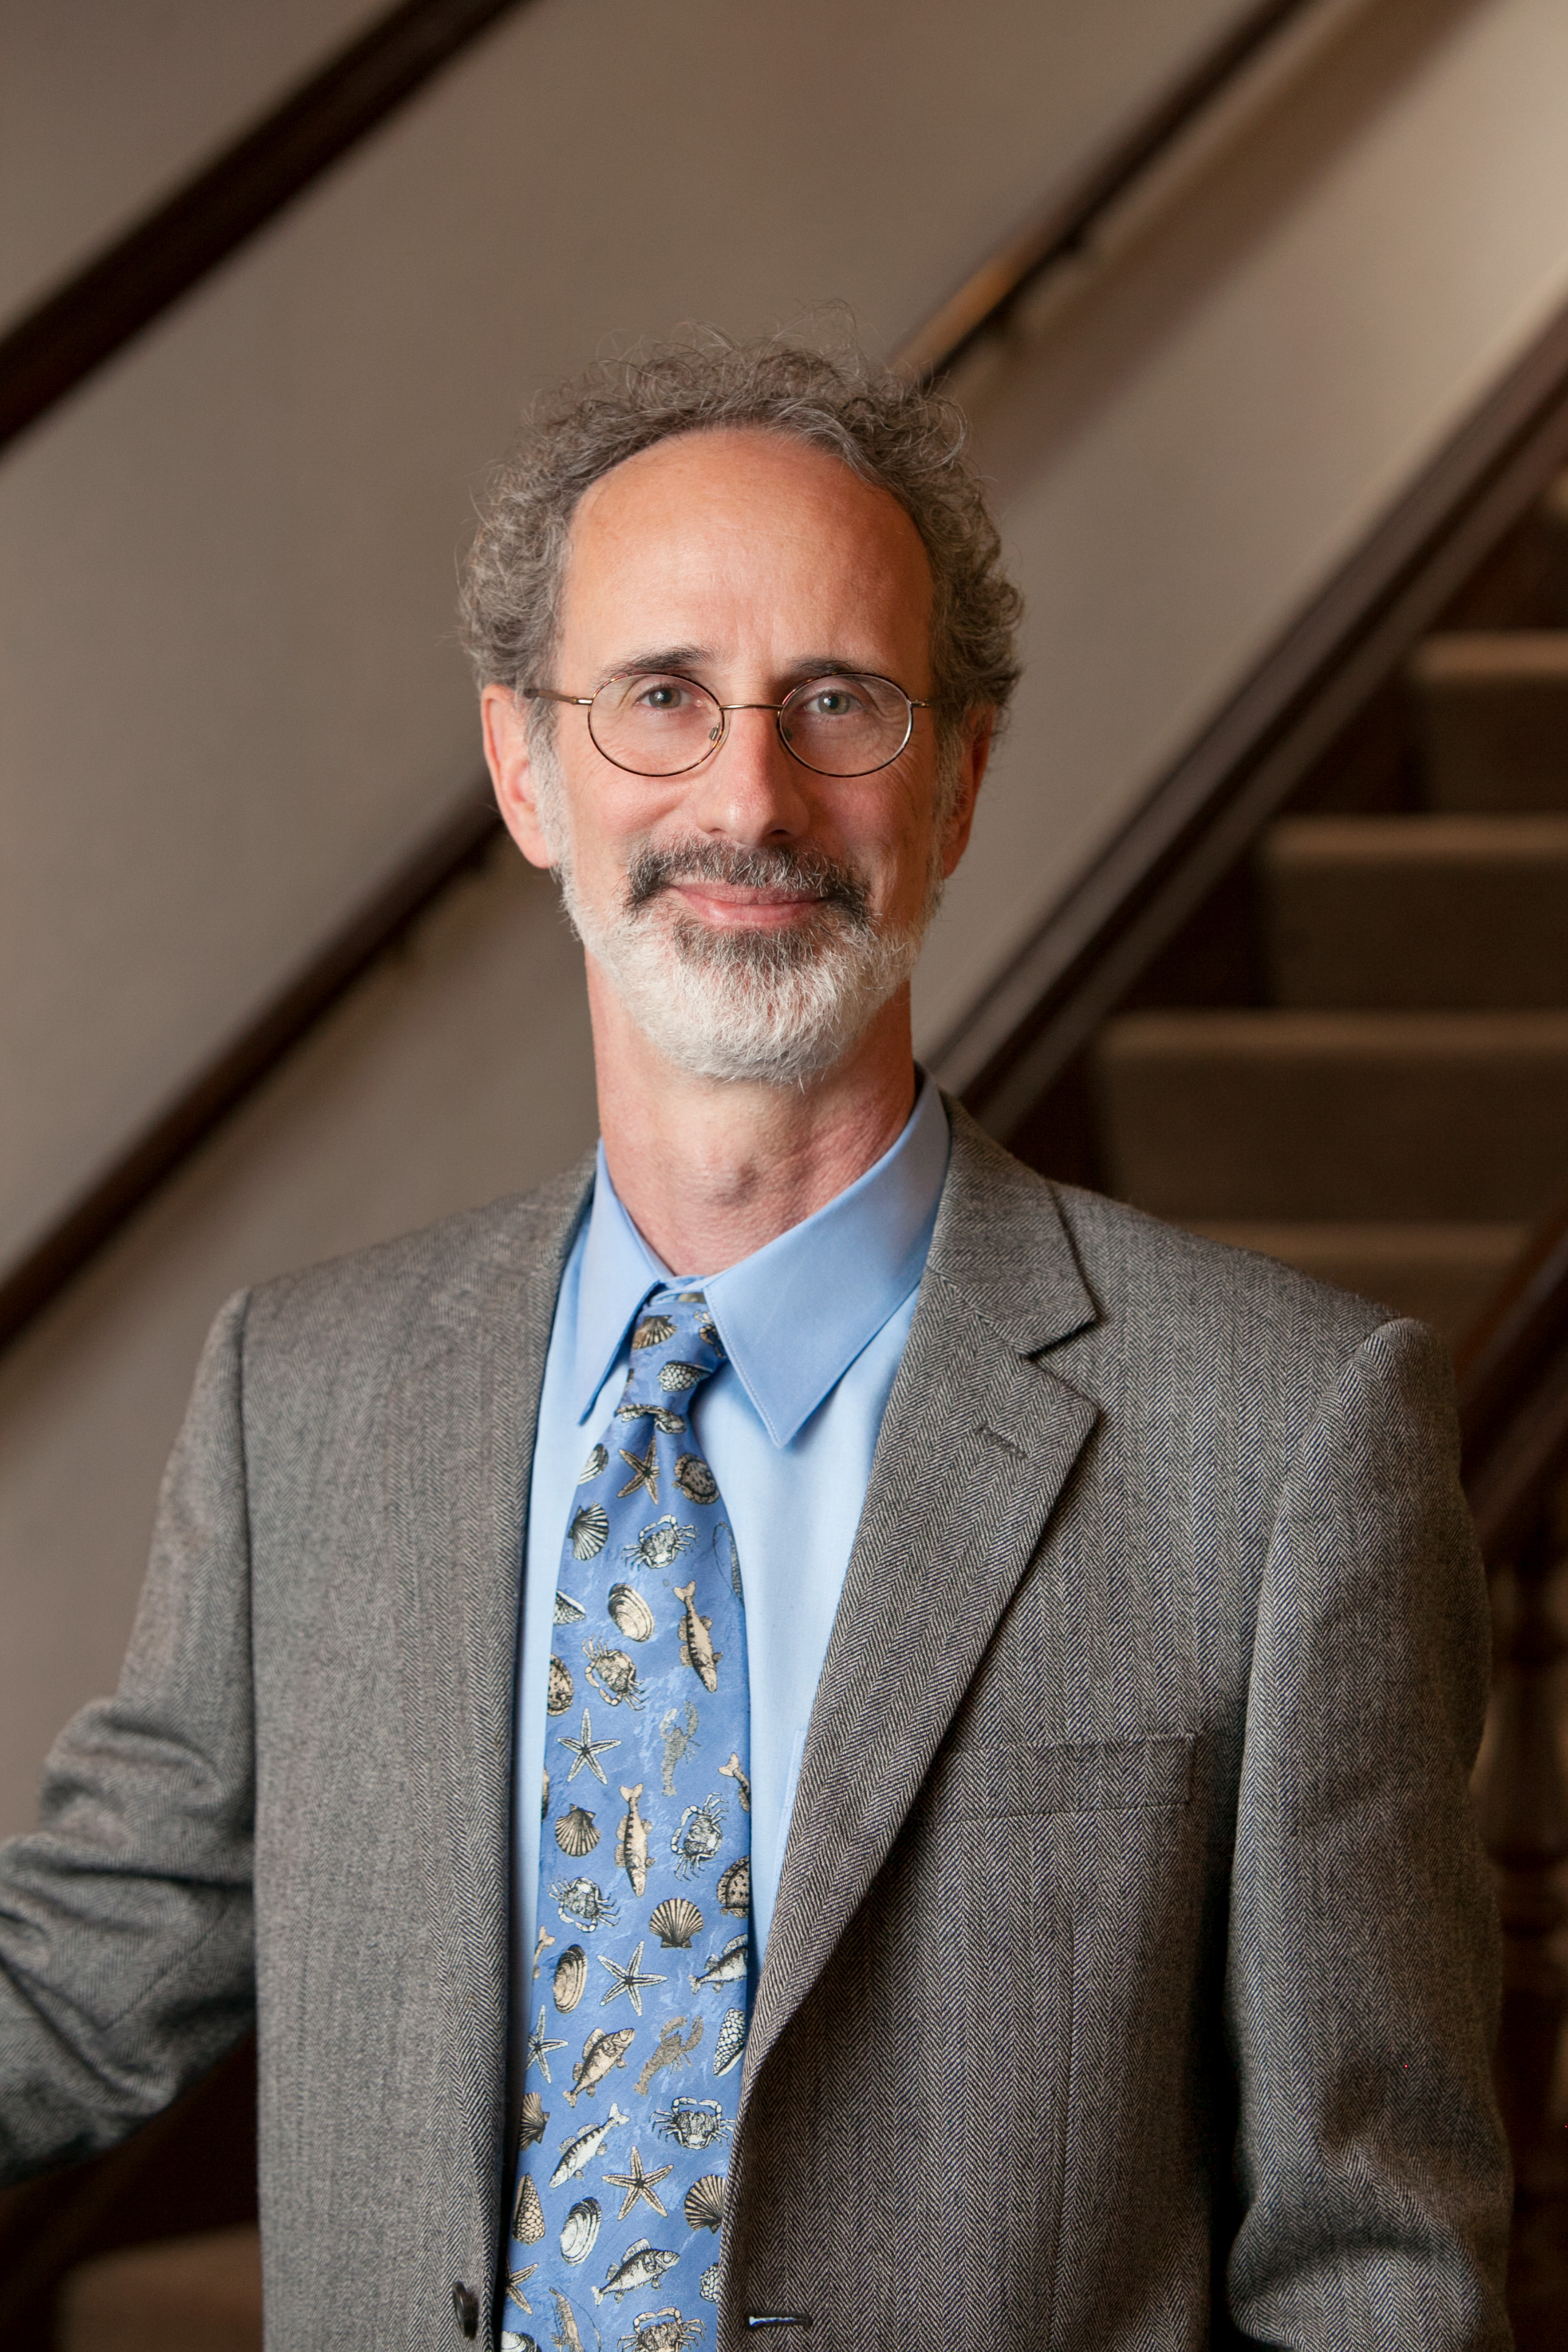 Dr. Peter Gleick, president emeritus of the Pacific Institute in Oakland, Calif.